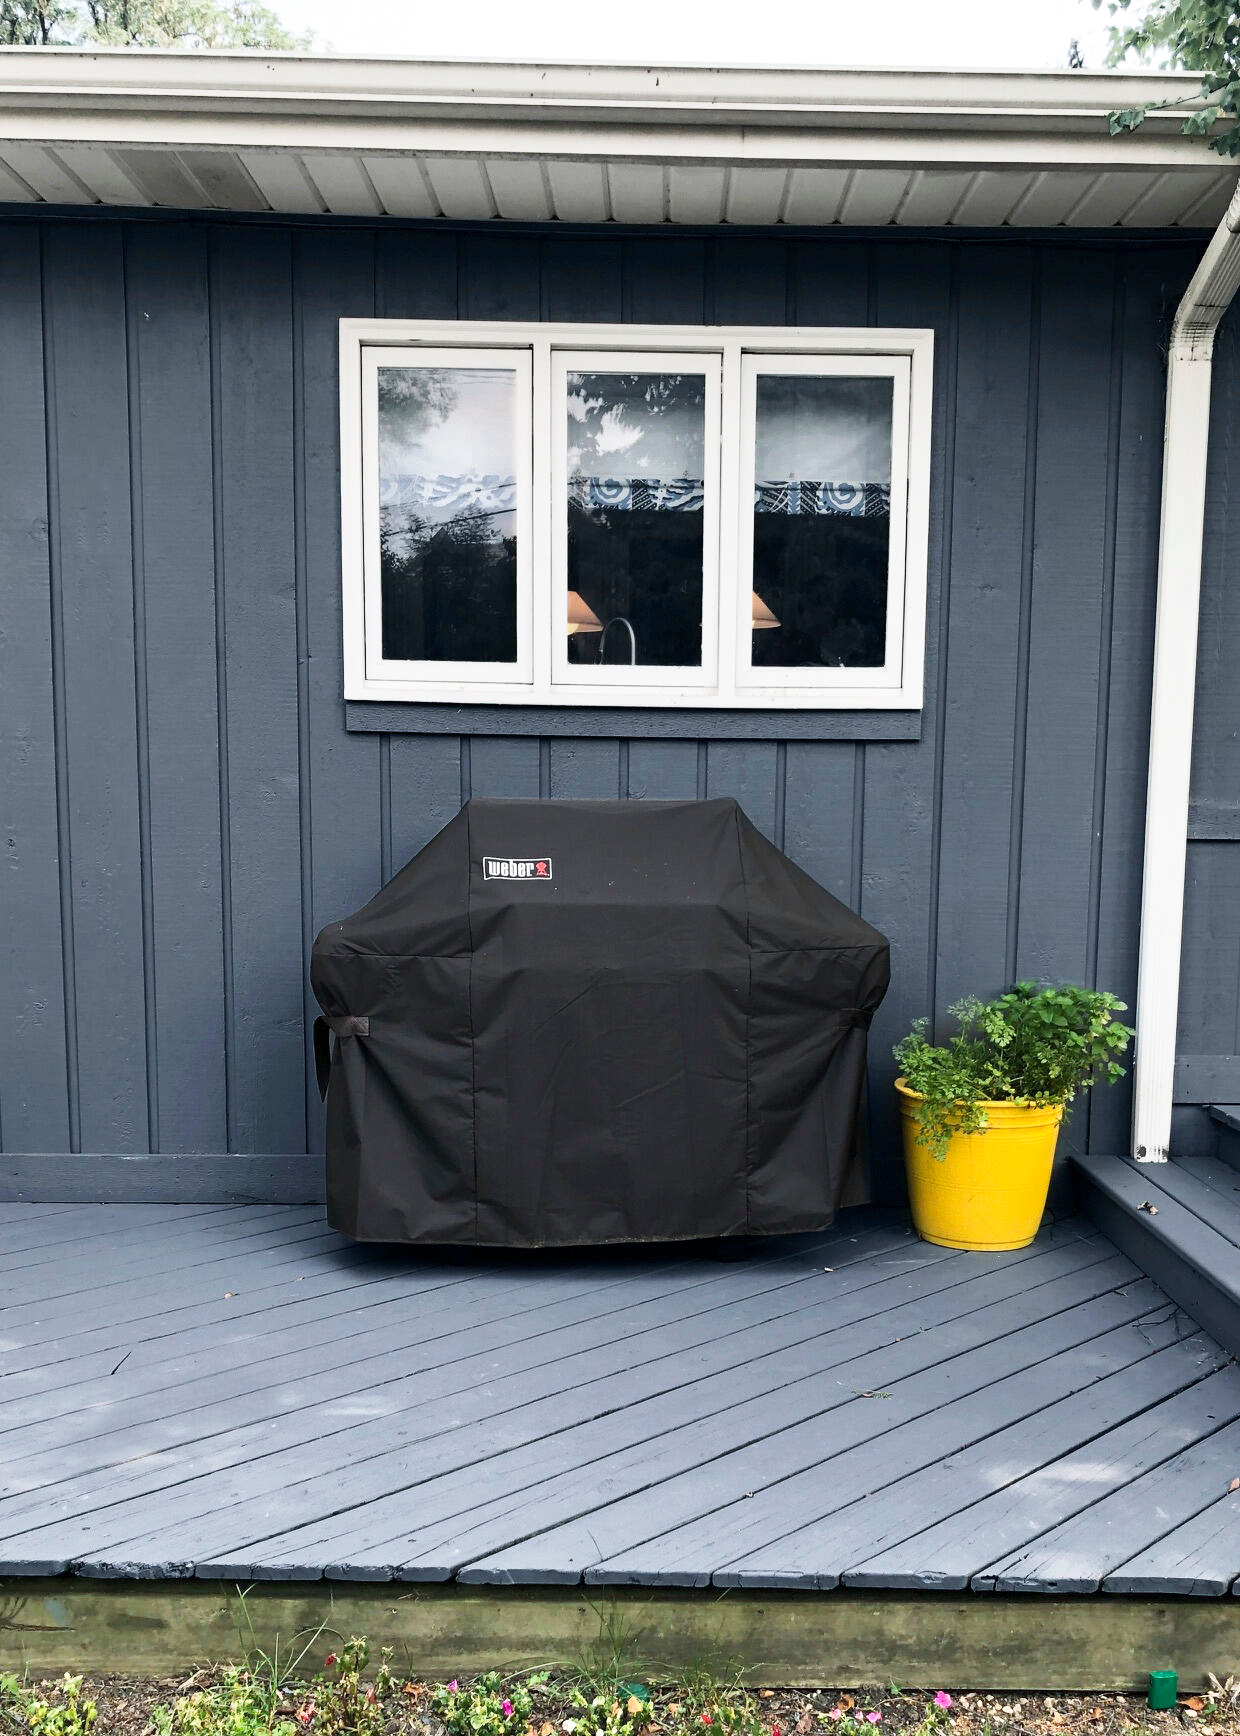 weber grill and plant